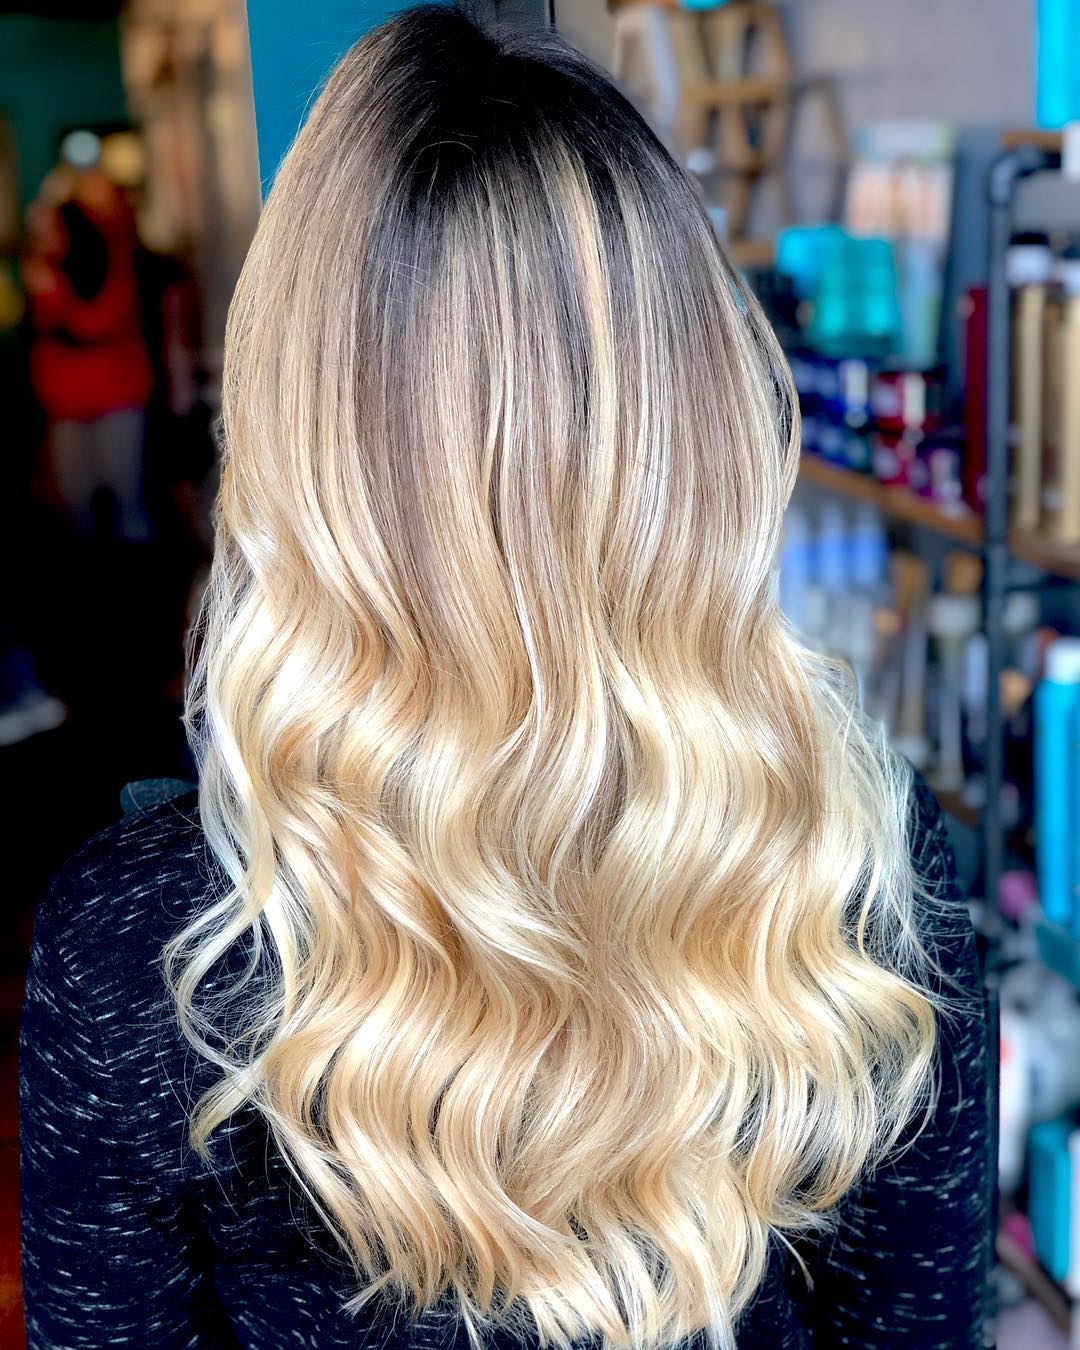 9 New Blonde Balayage Hairstyles You'll Love! – Her Style Code Inside Trendy Blonde Balayage On Long Voluminous Hairstyles (View 2 of 20)